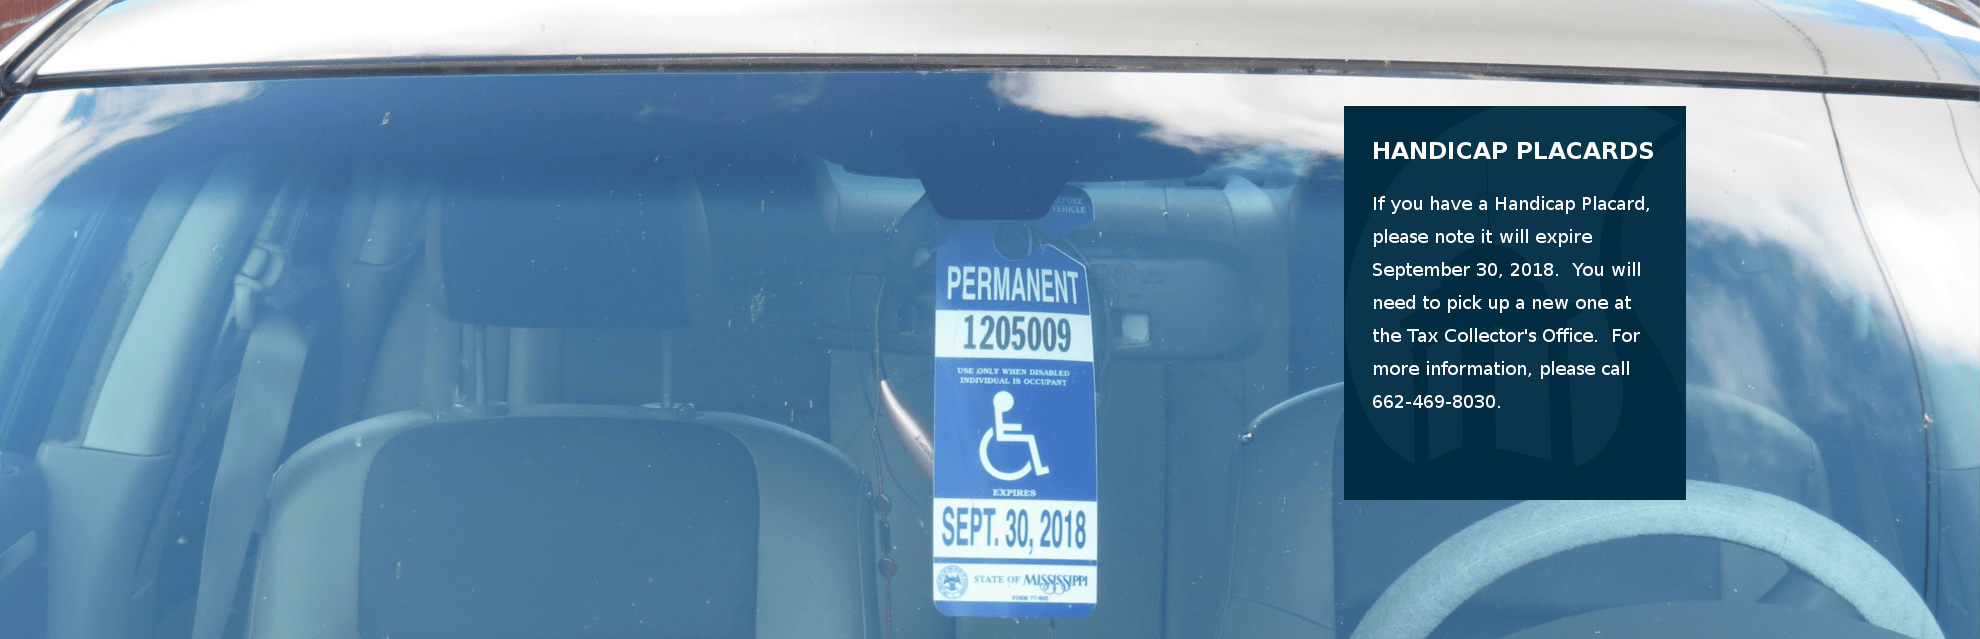 Handicap Placards Expire on September 30